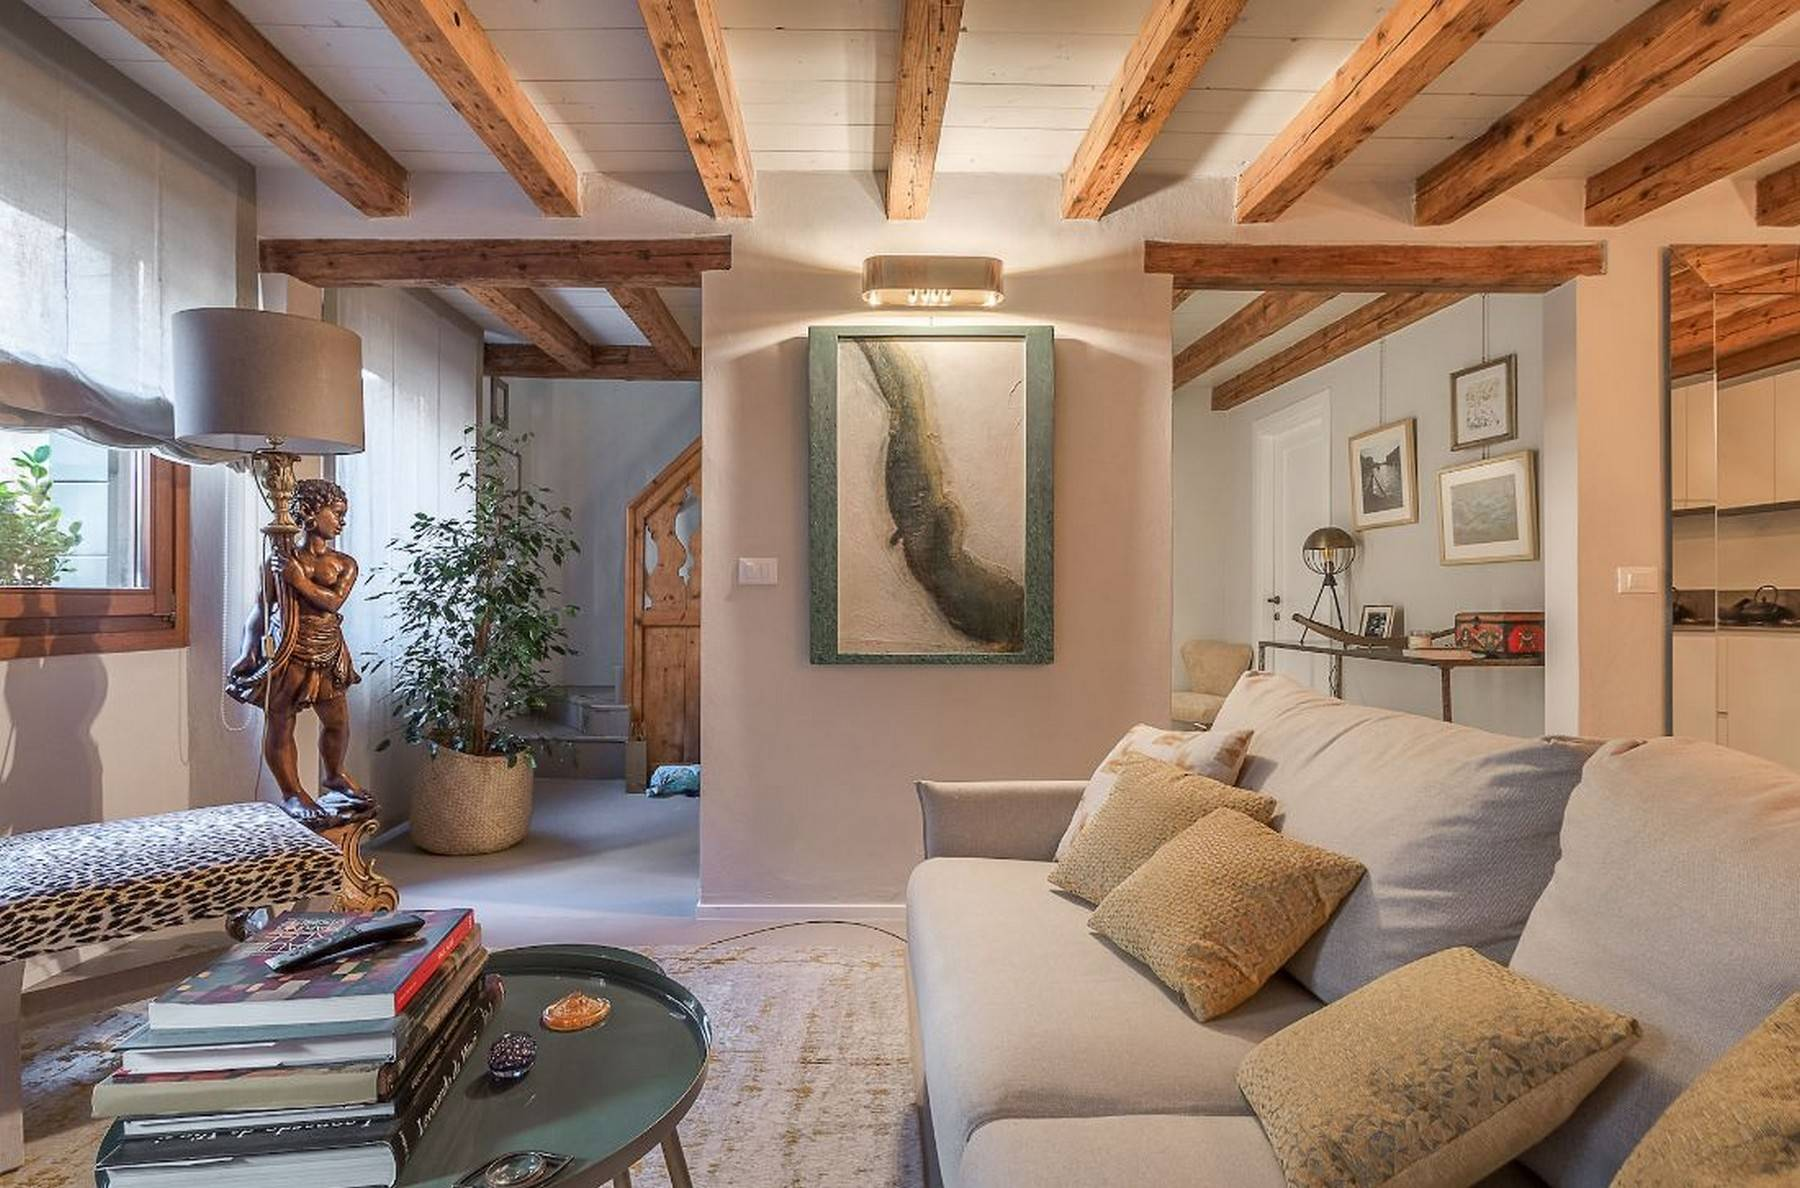 Castello design duplex with charming roof terrace - 7